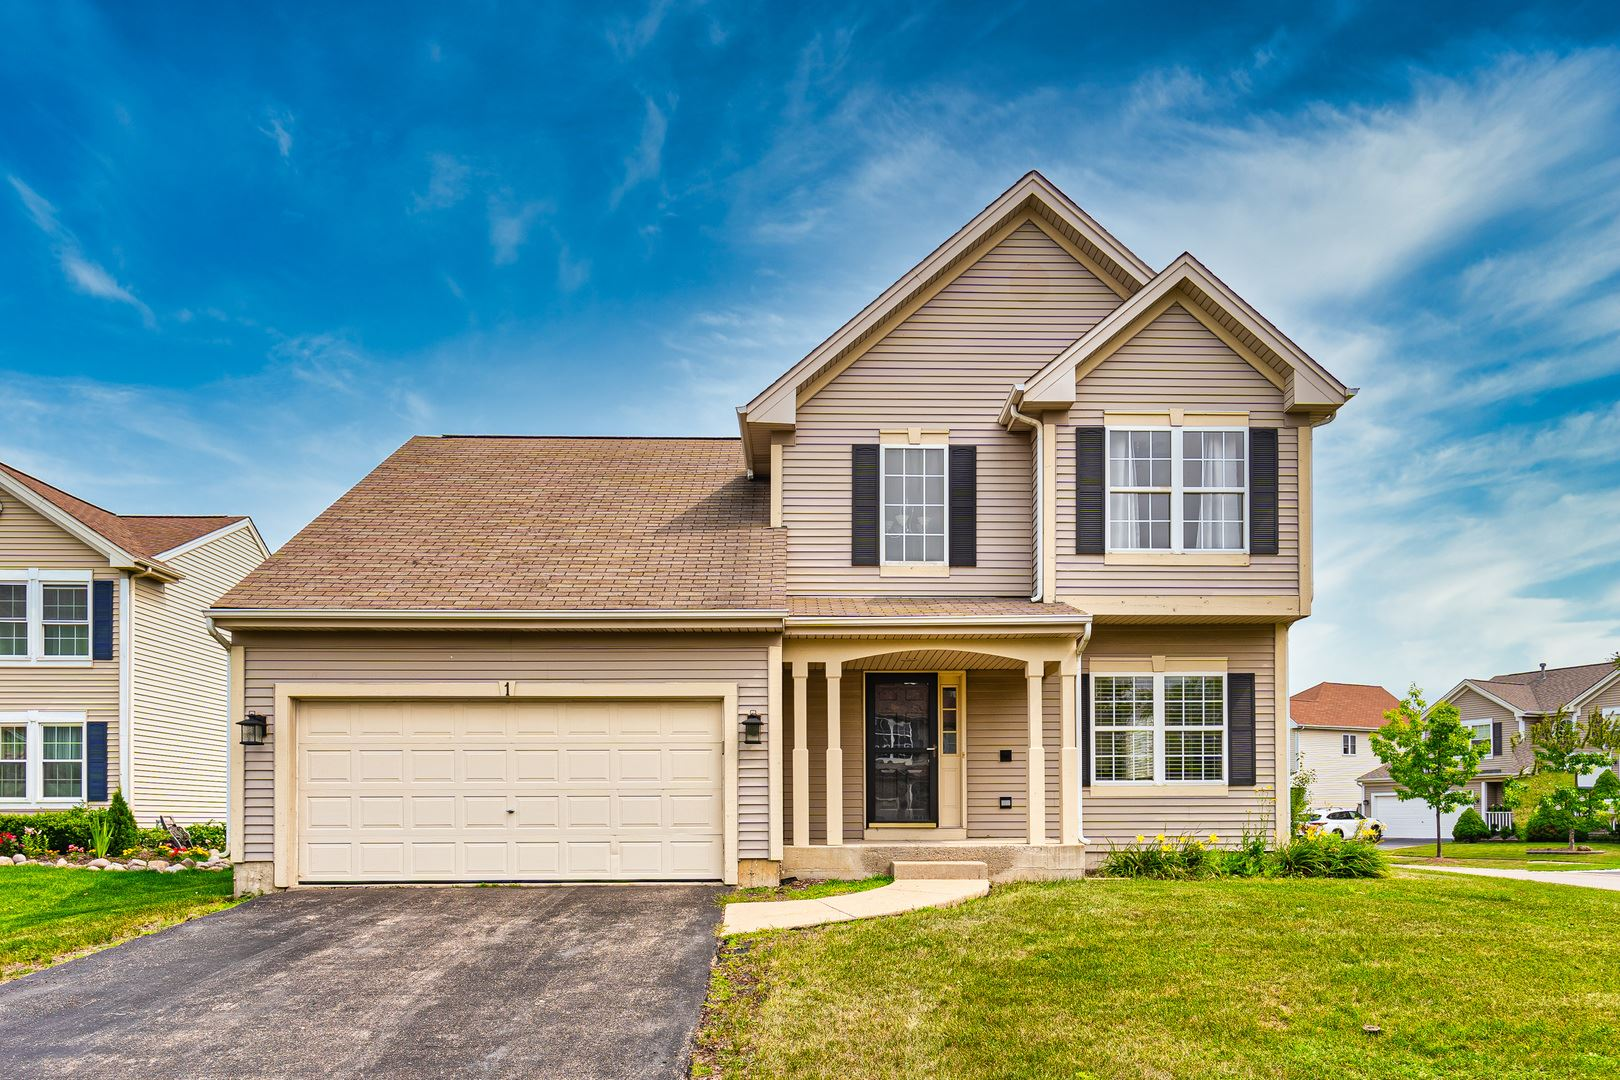 1 BANBURY Court, Lake in the Hills, IL 60156 - #: 11166033